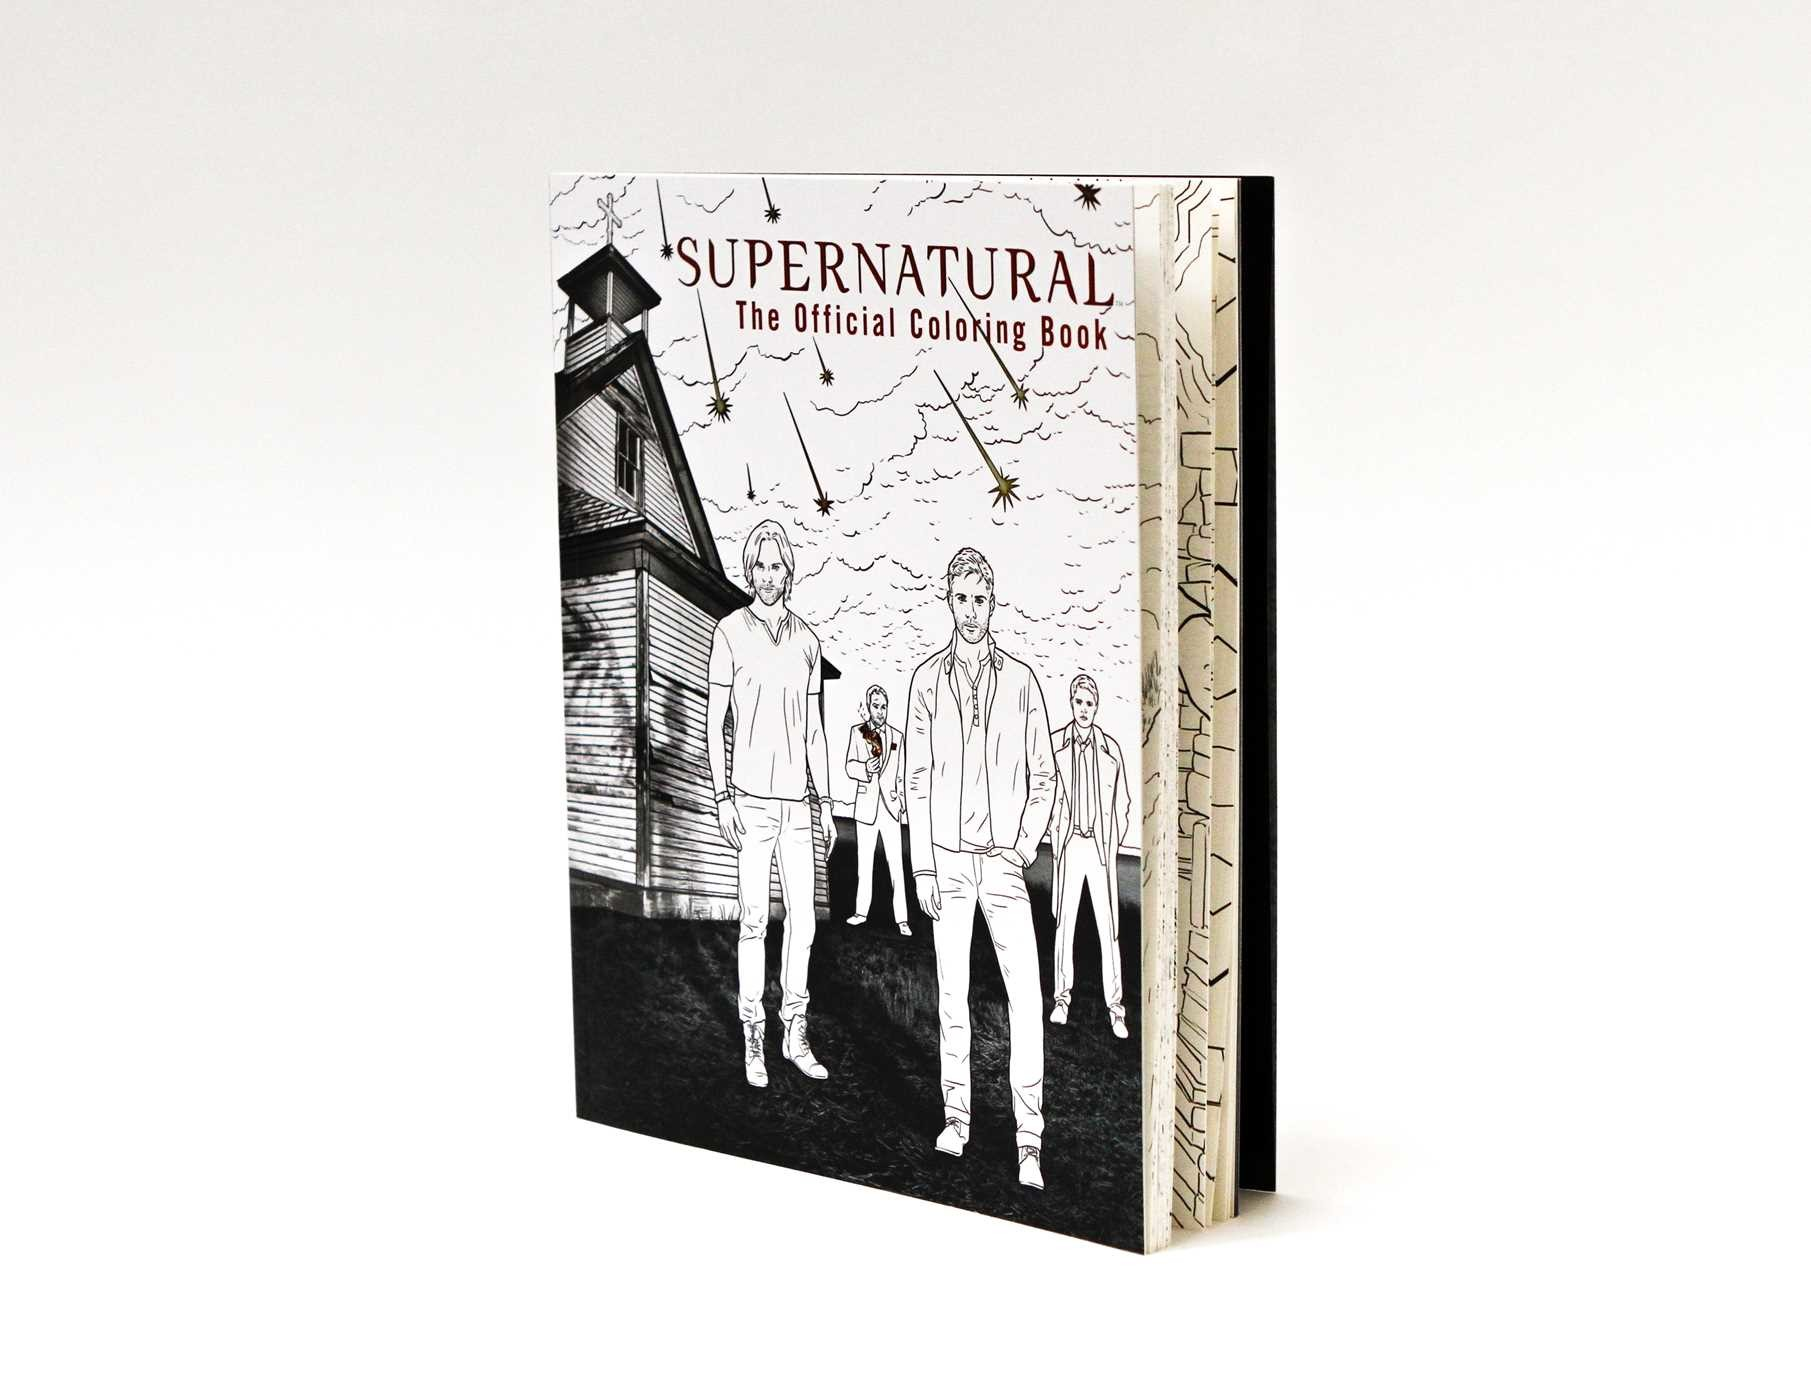 Supernatural the official coloring book 9781608878185.in06